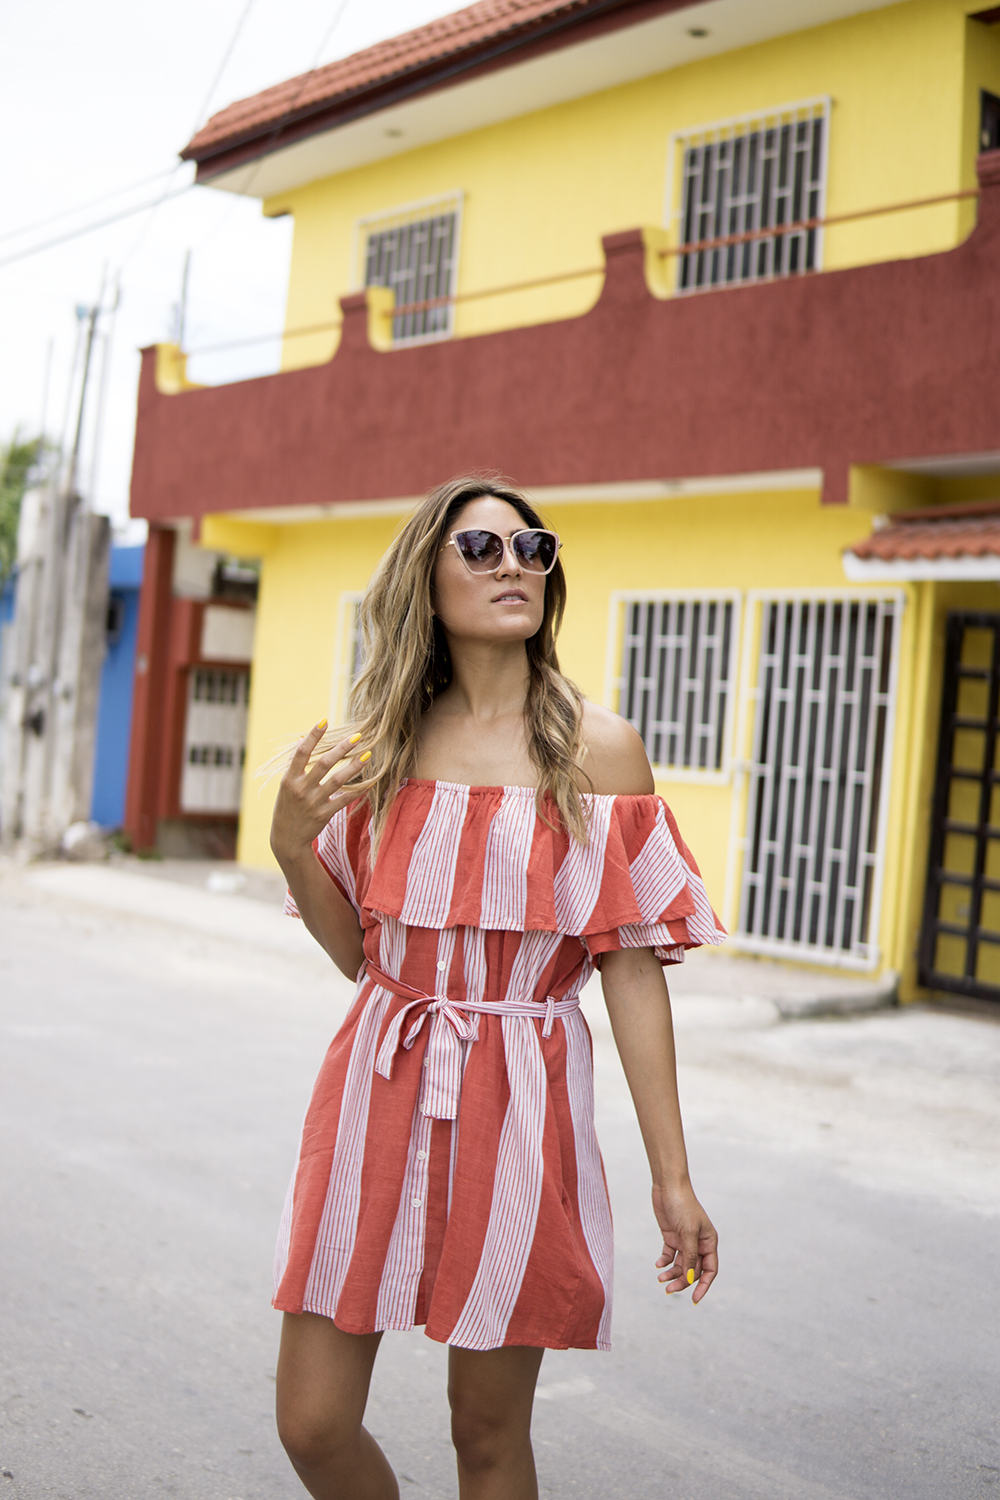 mojitos, coco tulum, lulus, vacation dresses, dresses, vacation shop, shop, vacation, tulum, mexico, shop lulus, sunglasses, bag, jewelry, melrodstyle, ootd, outfits, inspiration, la blogger, latina blogger, mexican blogger, hispanic blogger,